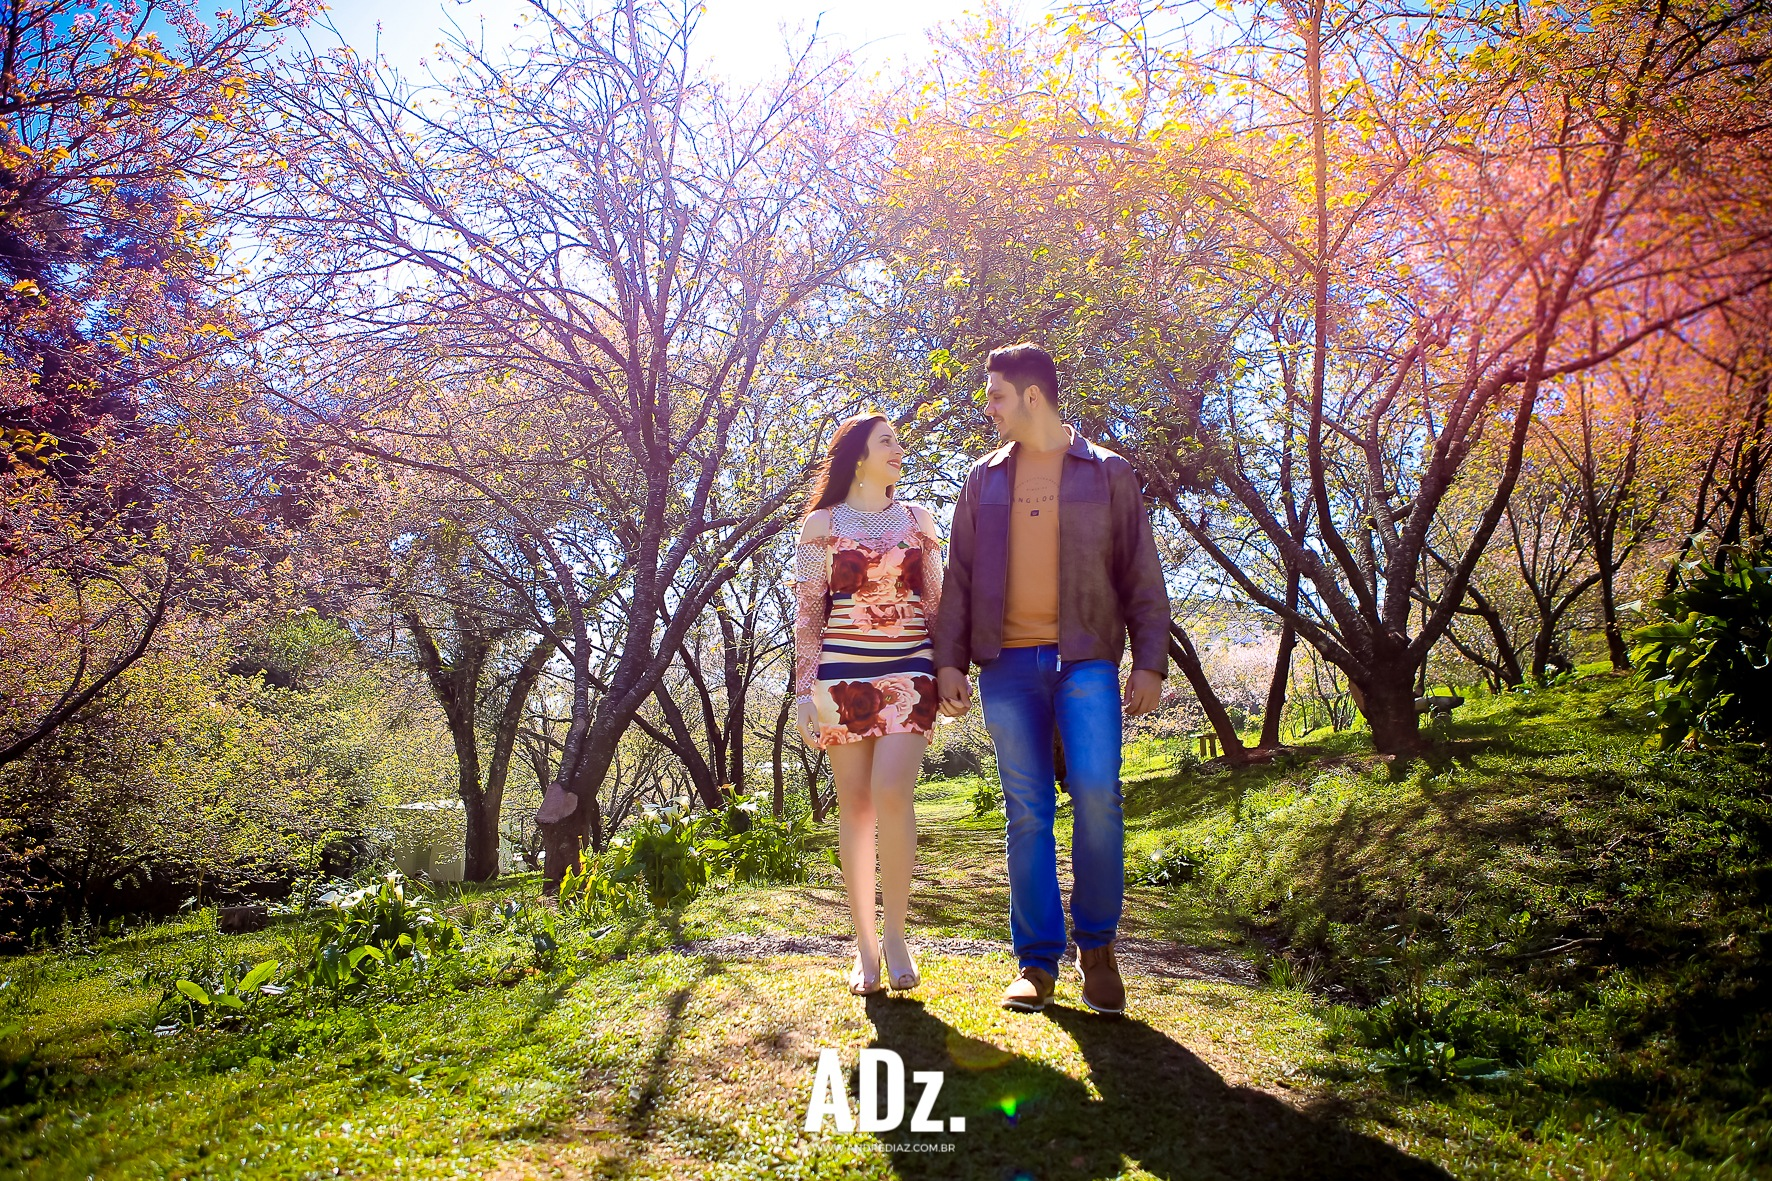 E - Session by Andre Diaz